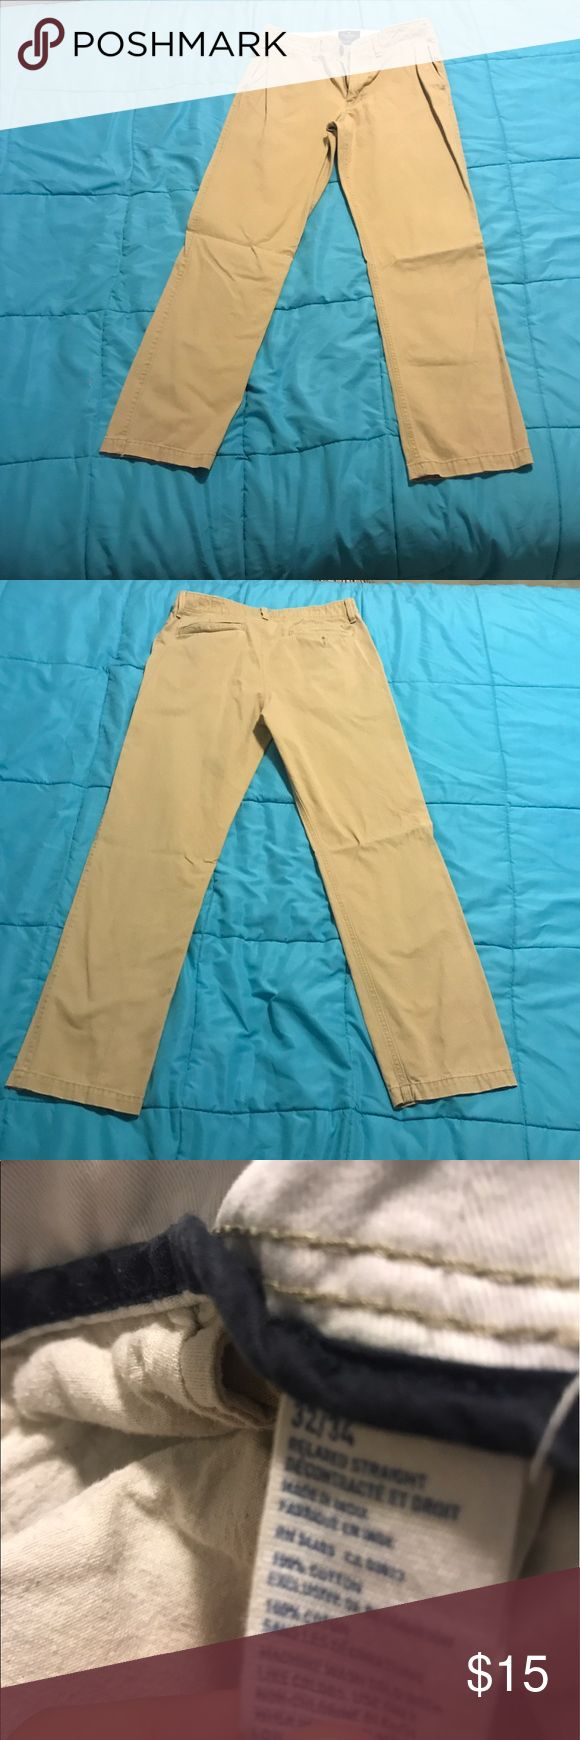 American Eagle Men's Khaki Pants. Size 32x34 American Eagle Men's Khaki Pants. Size 32 waist 34 length. Excellent condition. American Eagle Outfitters Pants Chinos & Khakis